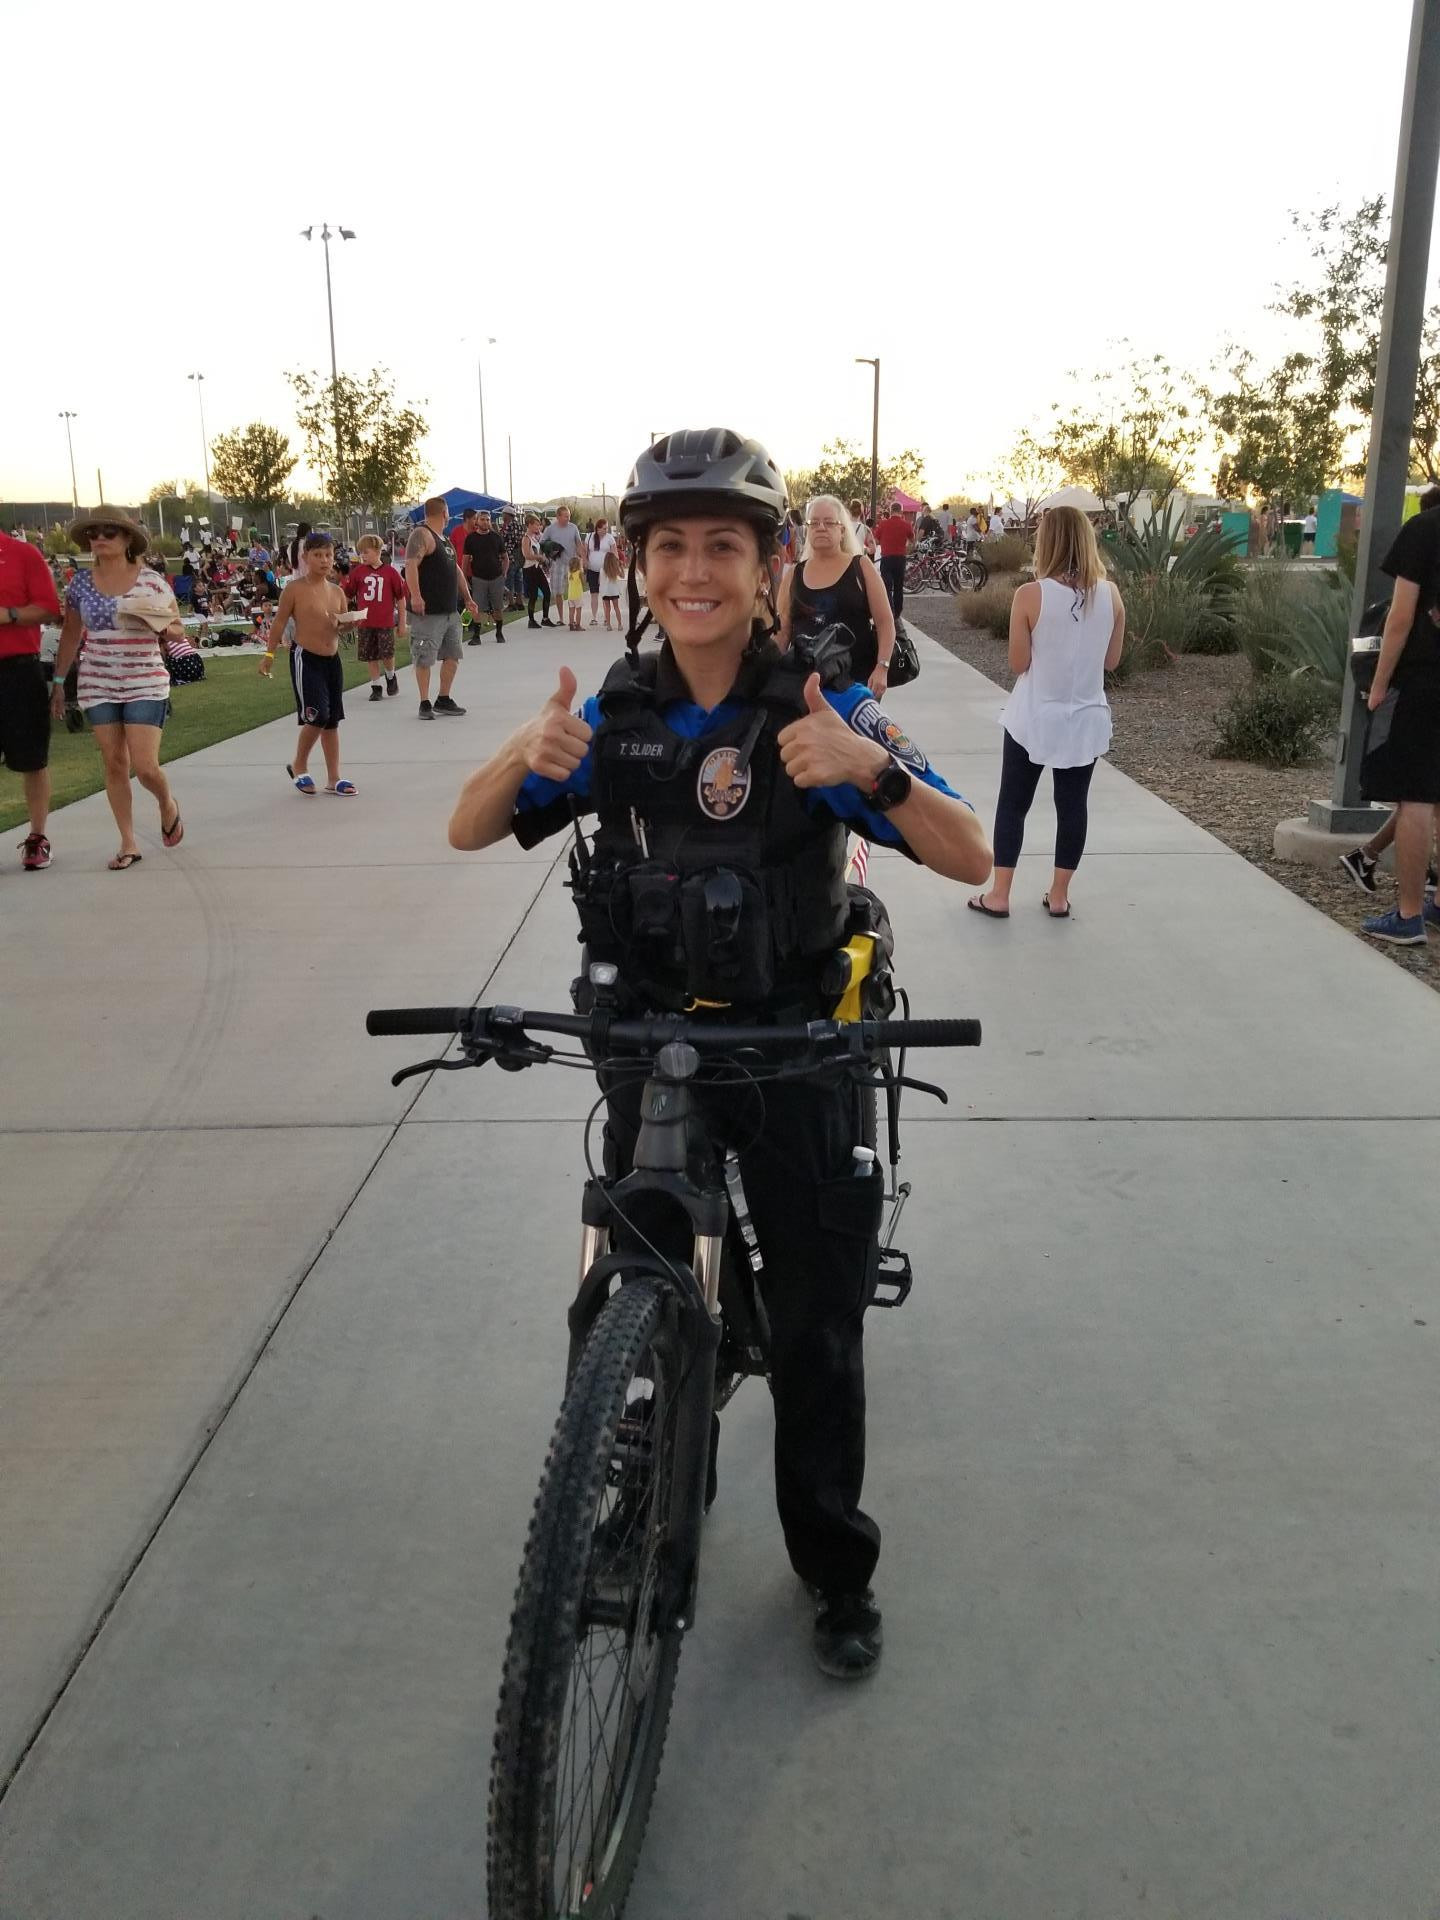 Picture of Officer Slider on her bike, showing Thumbs Up with both hands.